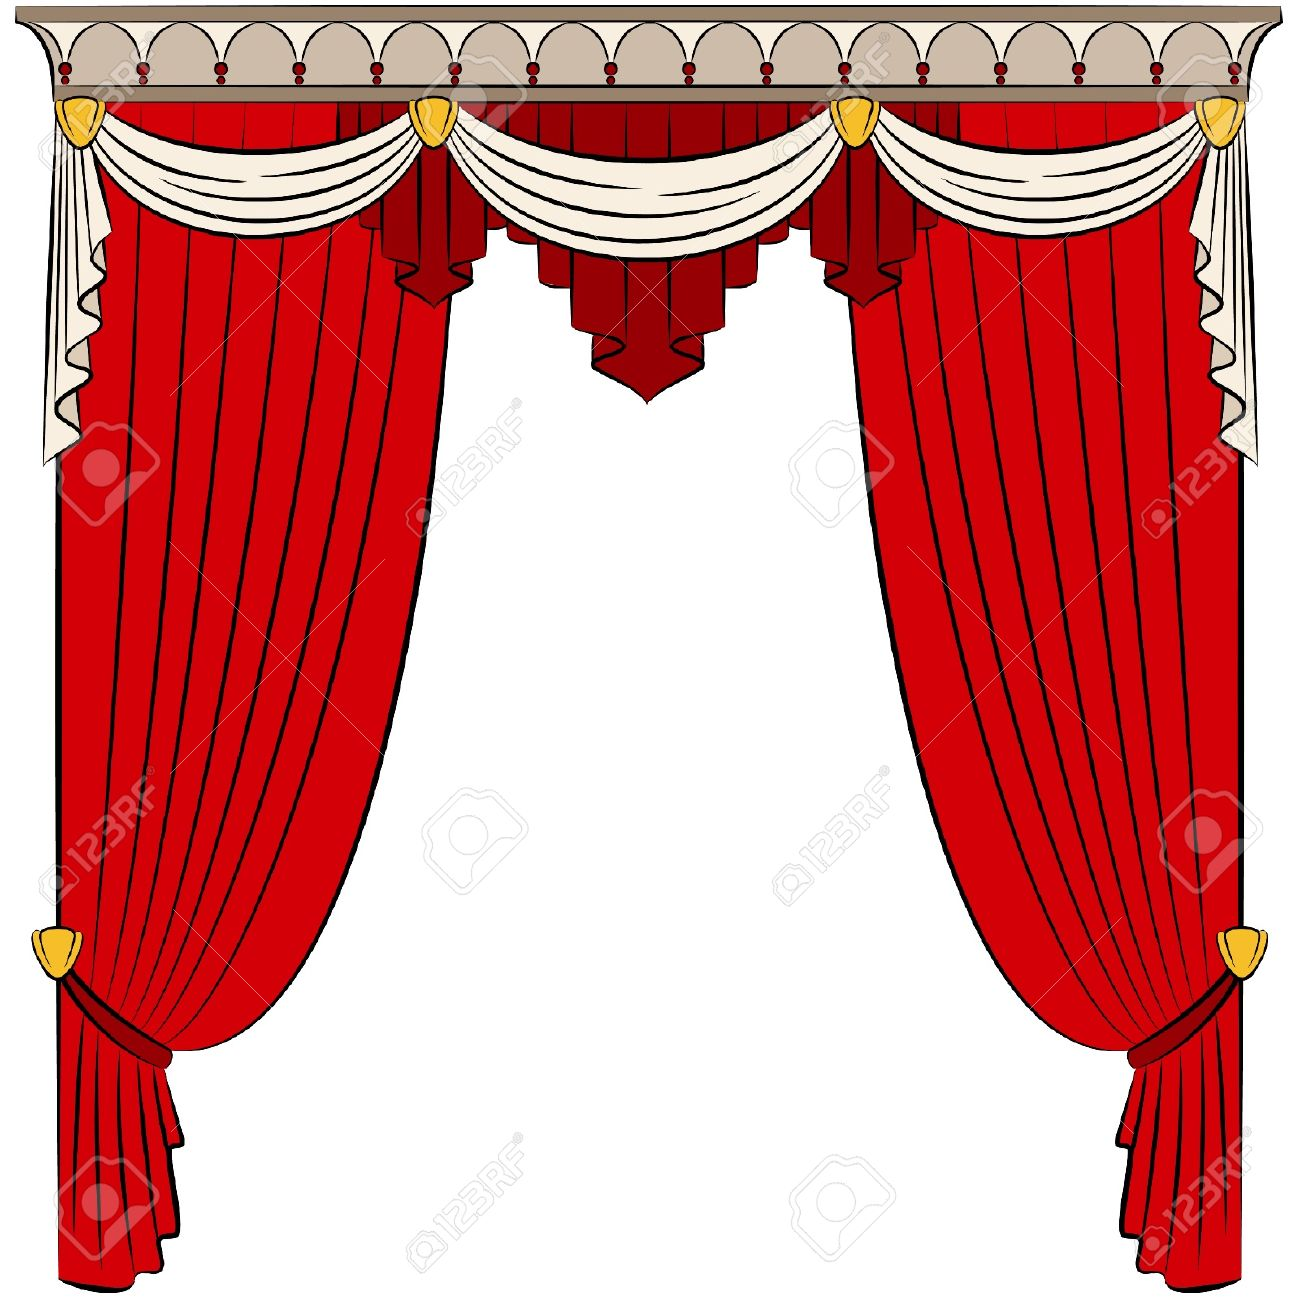 The vintage interior with curtain. Stock Vector - 10719357